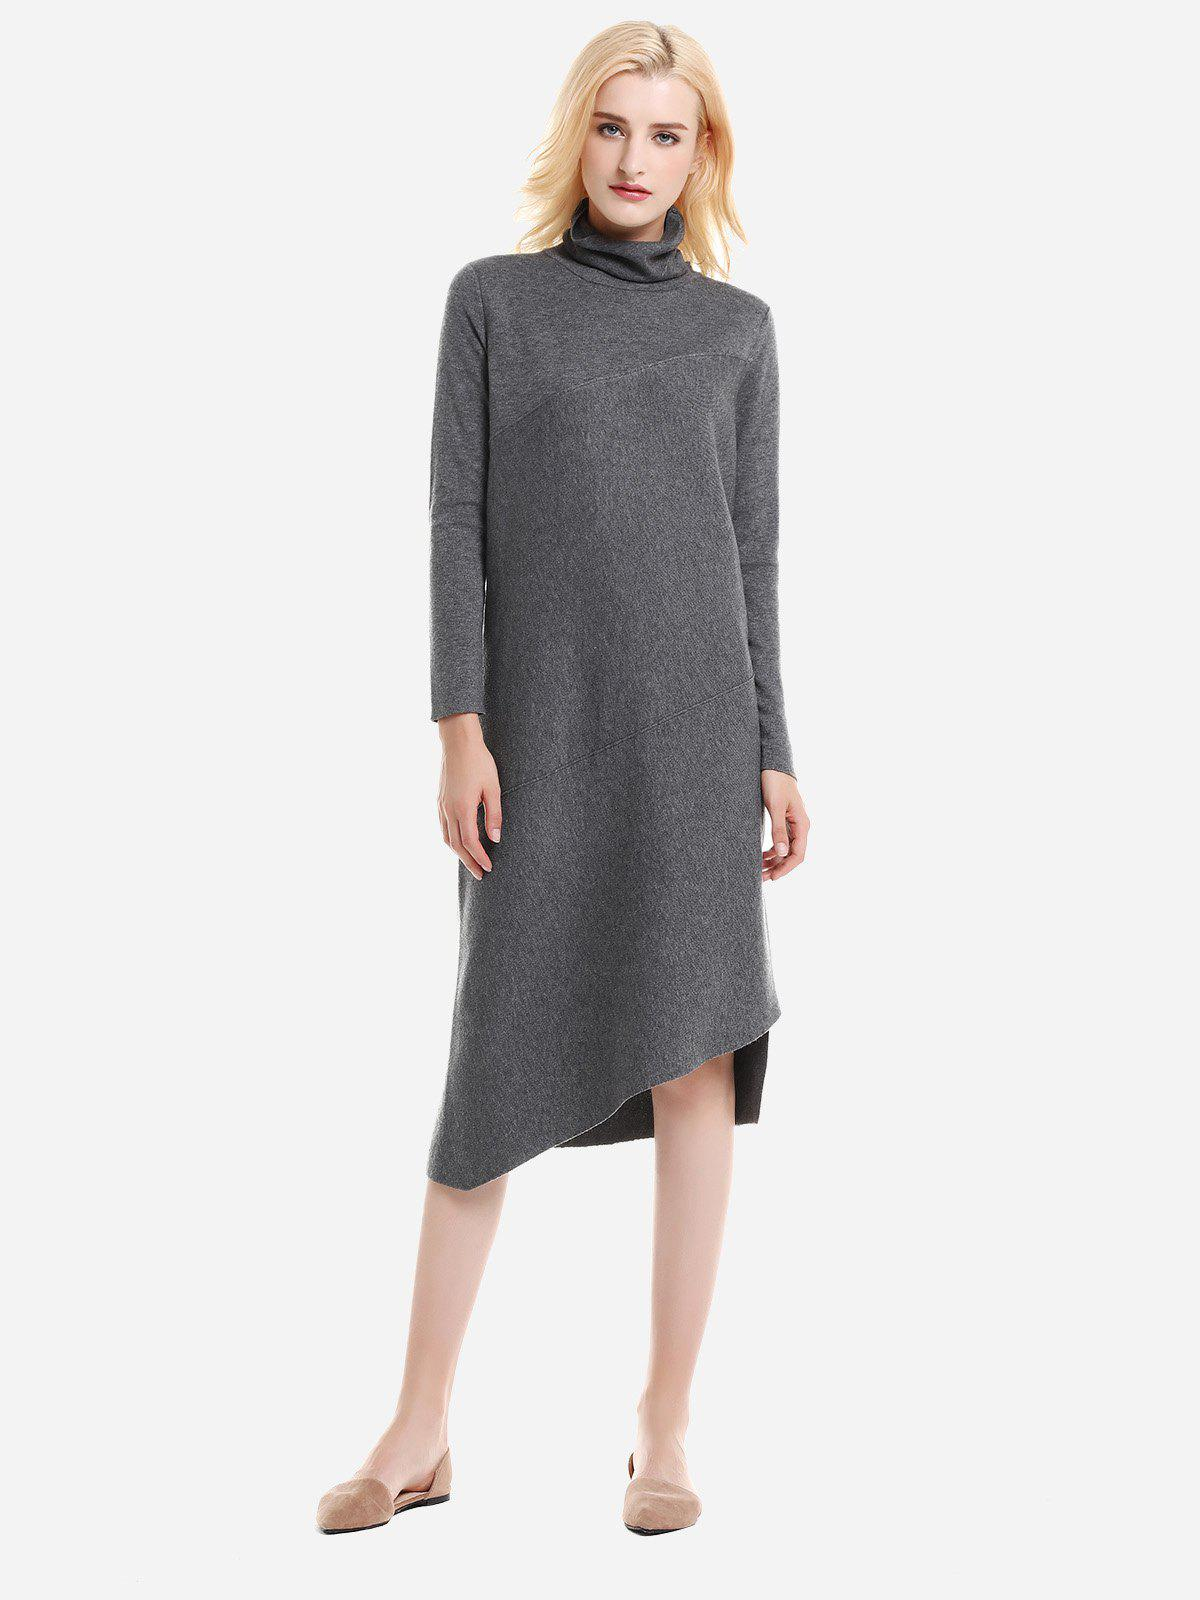 ZAN.STYLE Turtleneck Collar Dress фото